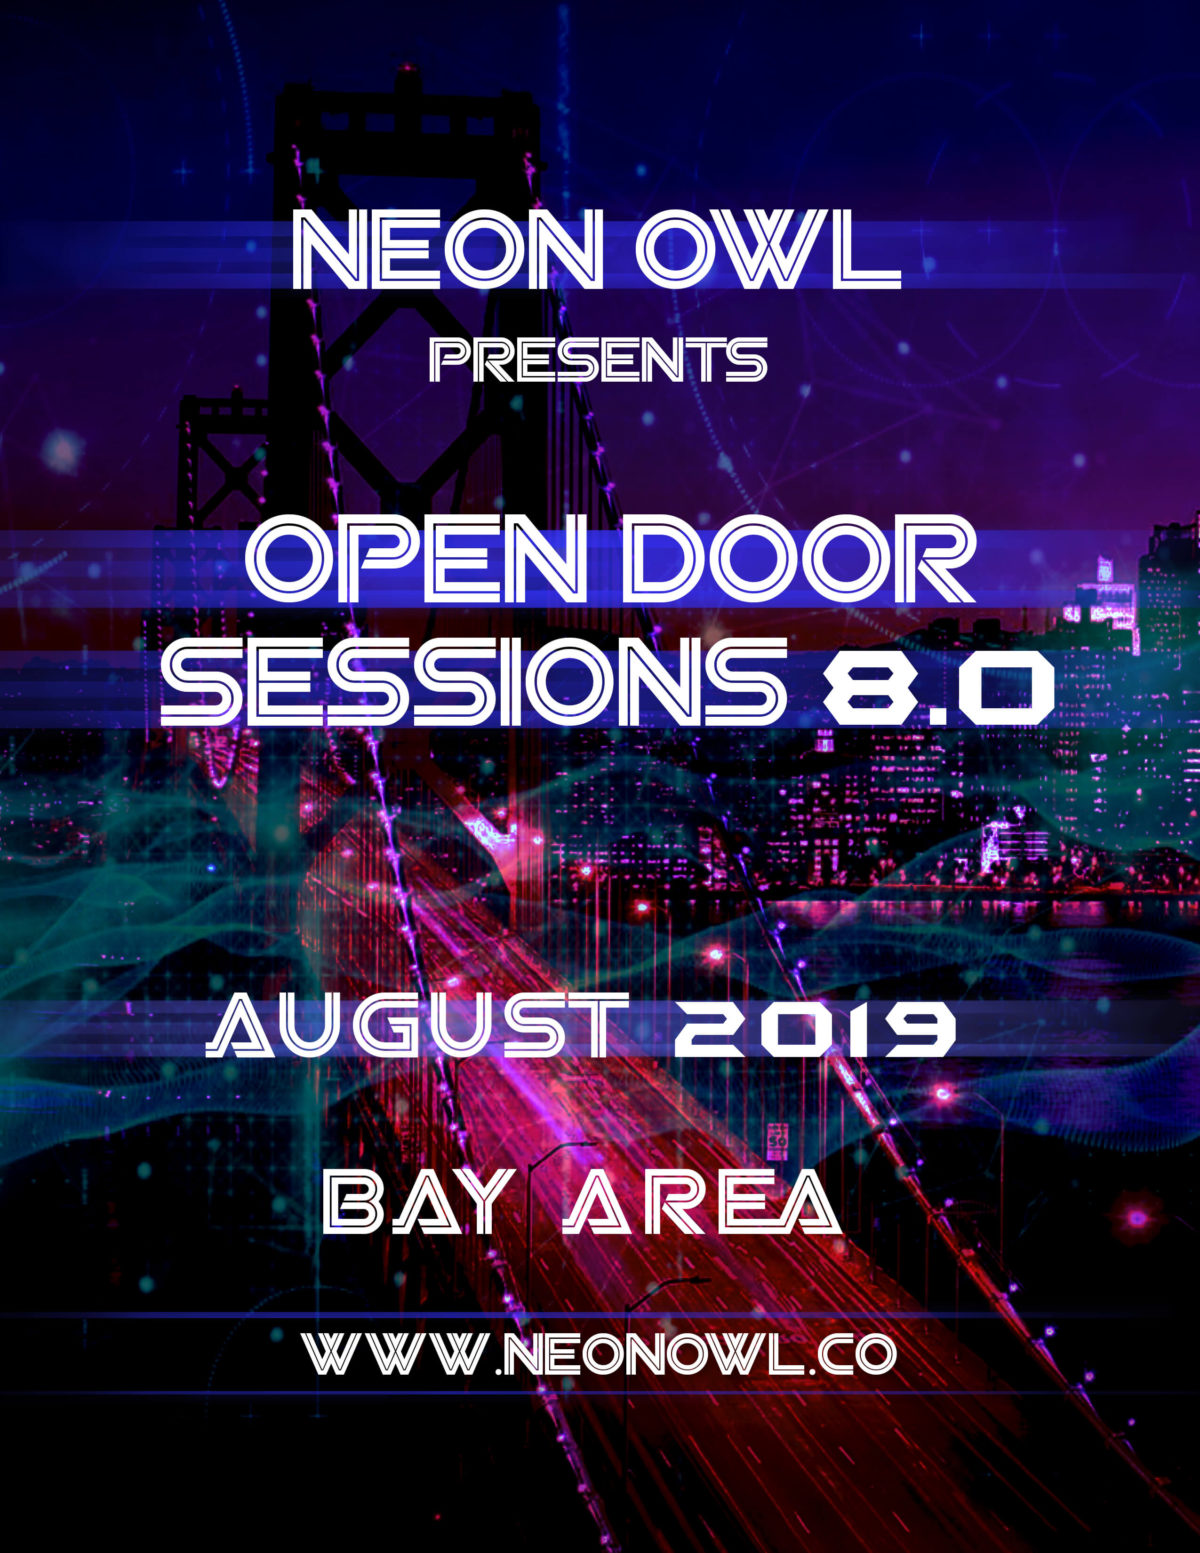 Open Door Sessions 8.0